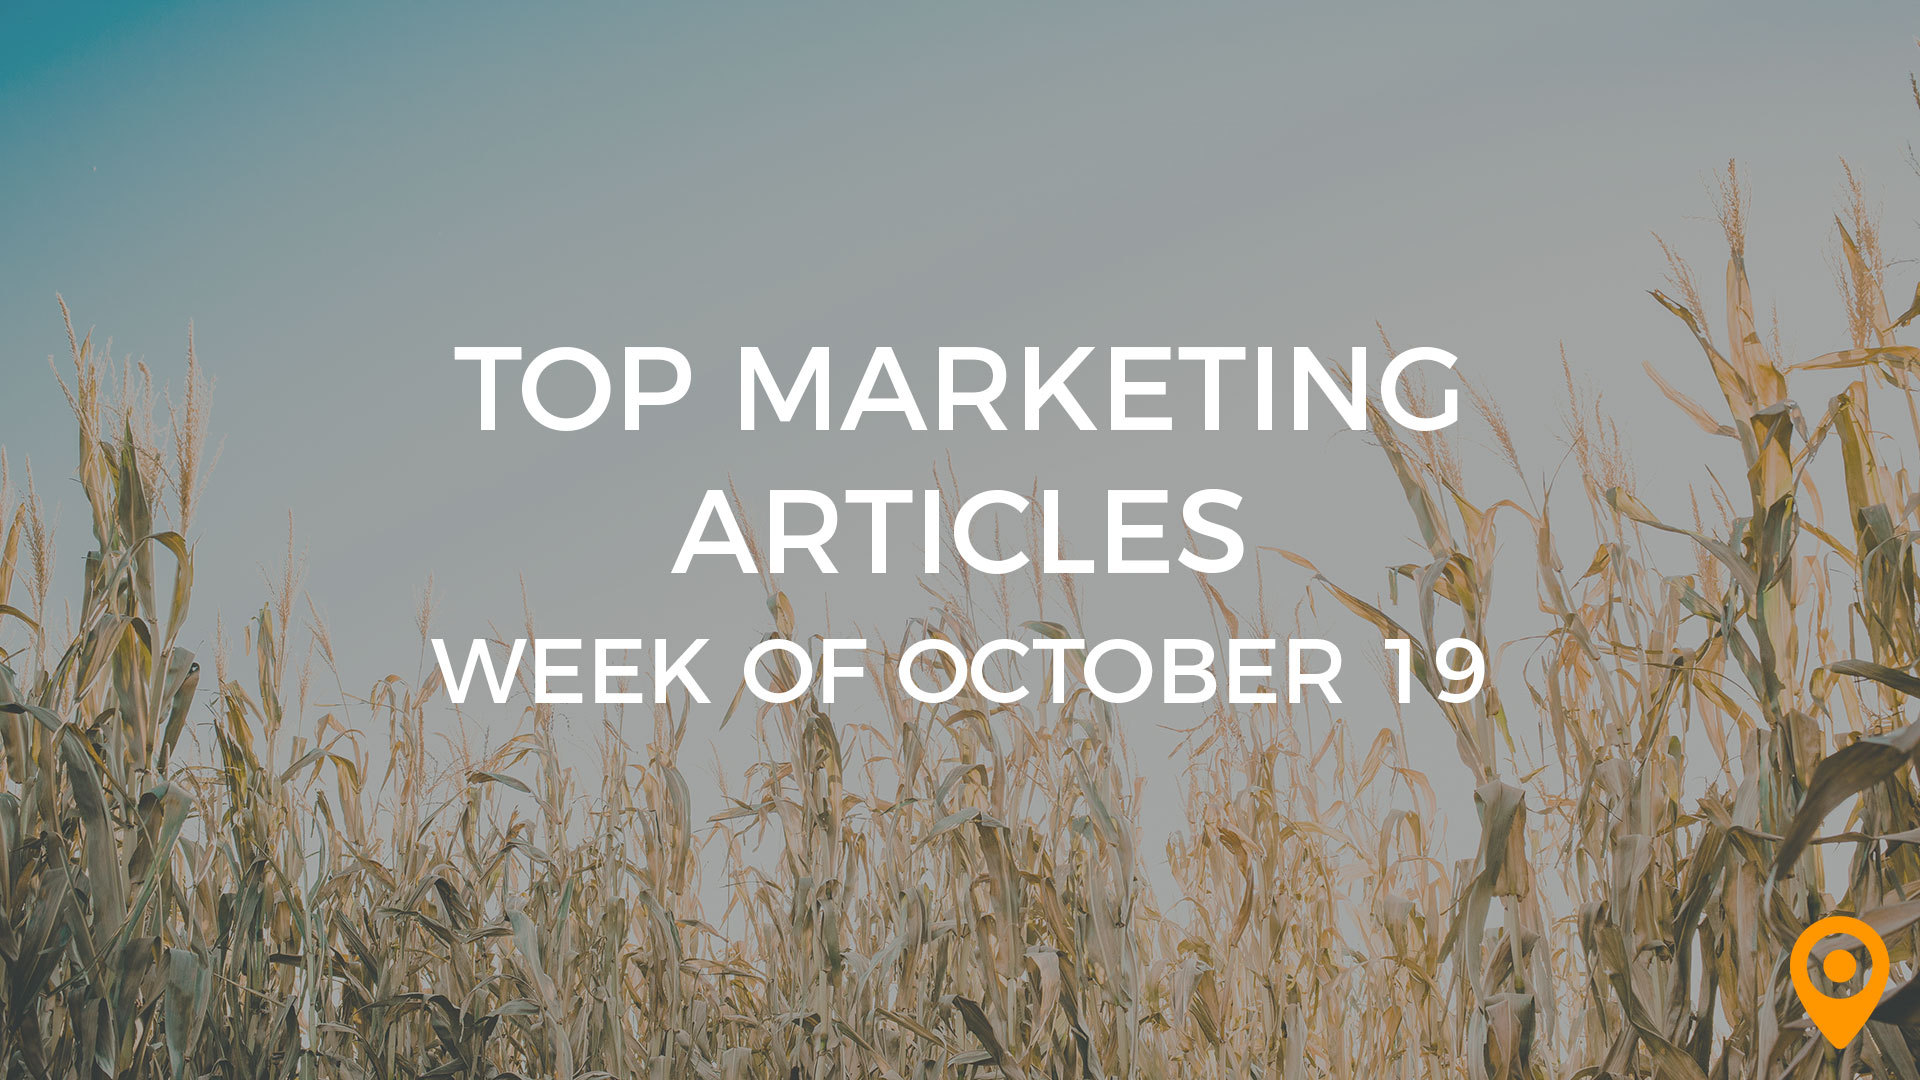 Top Marketing Articles - Week of October 19